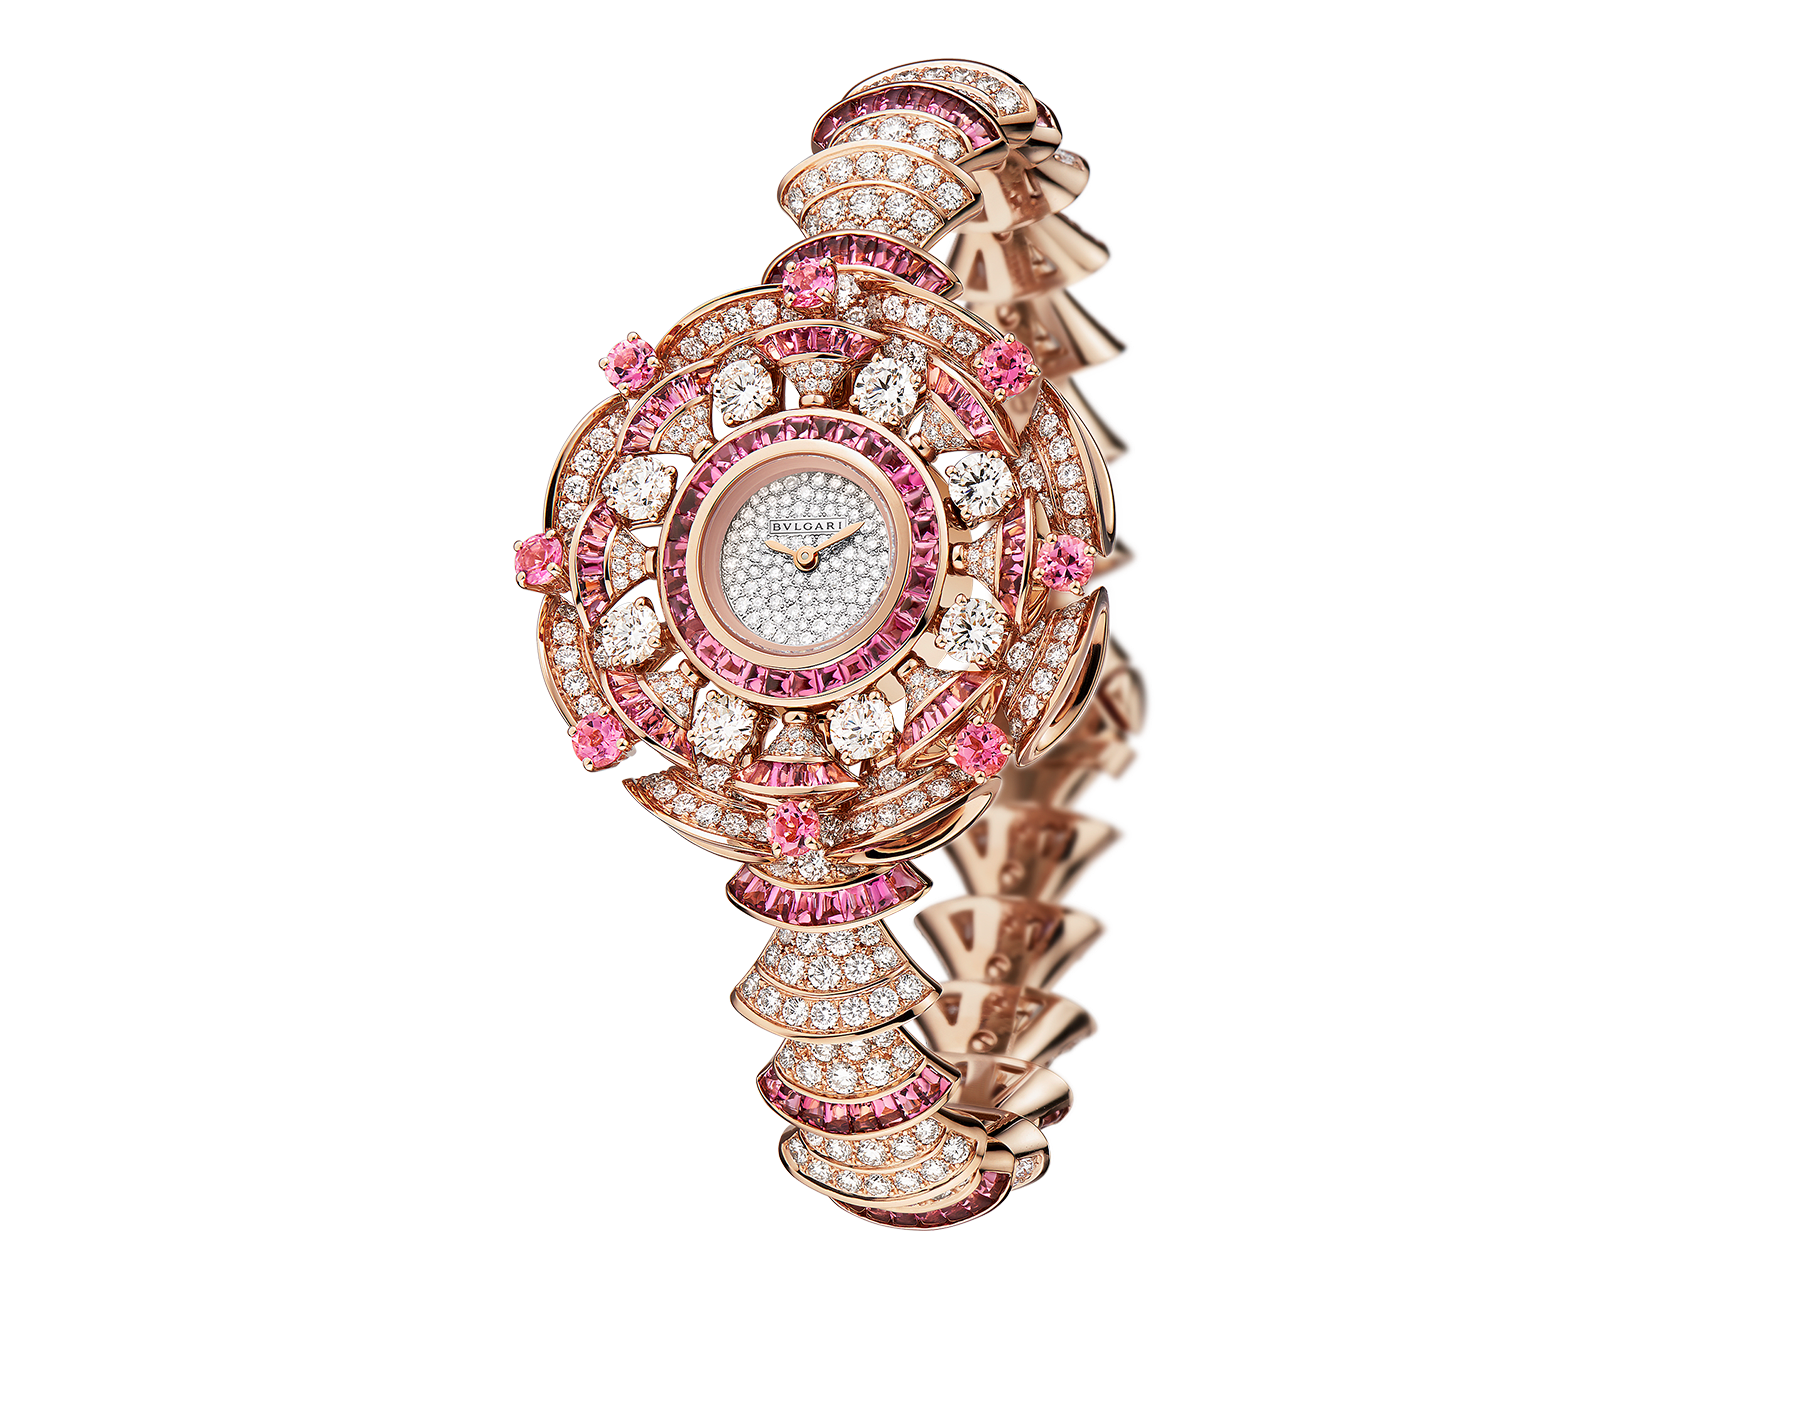 DIVAS' DREAM watch with 18 kt rose gold case set with brilliant-cut diamonds and rubellites, and buff-cut rubellites, snow pavé dial and 18 kt rose gold bracelet set with brilliant-cut diamonds and buff-cut rubellites 102562 image 1